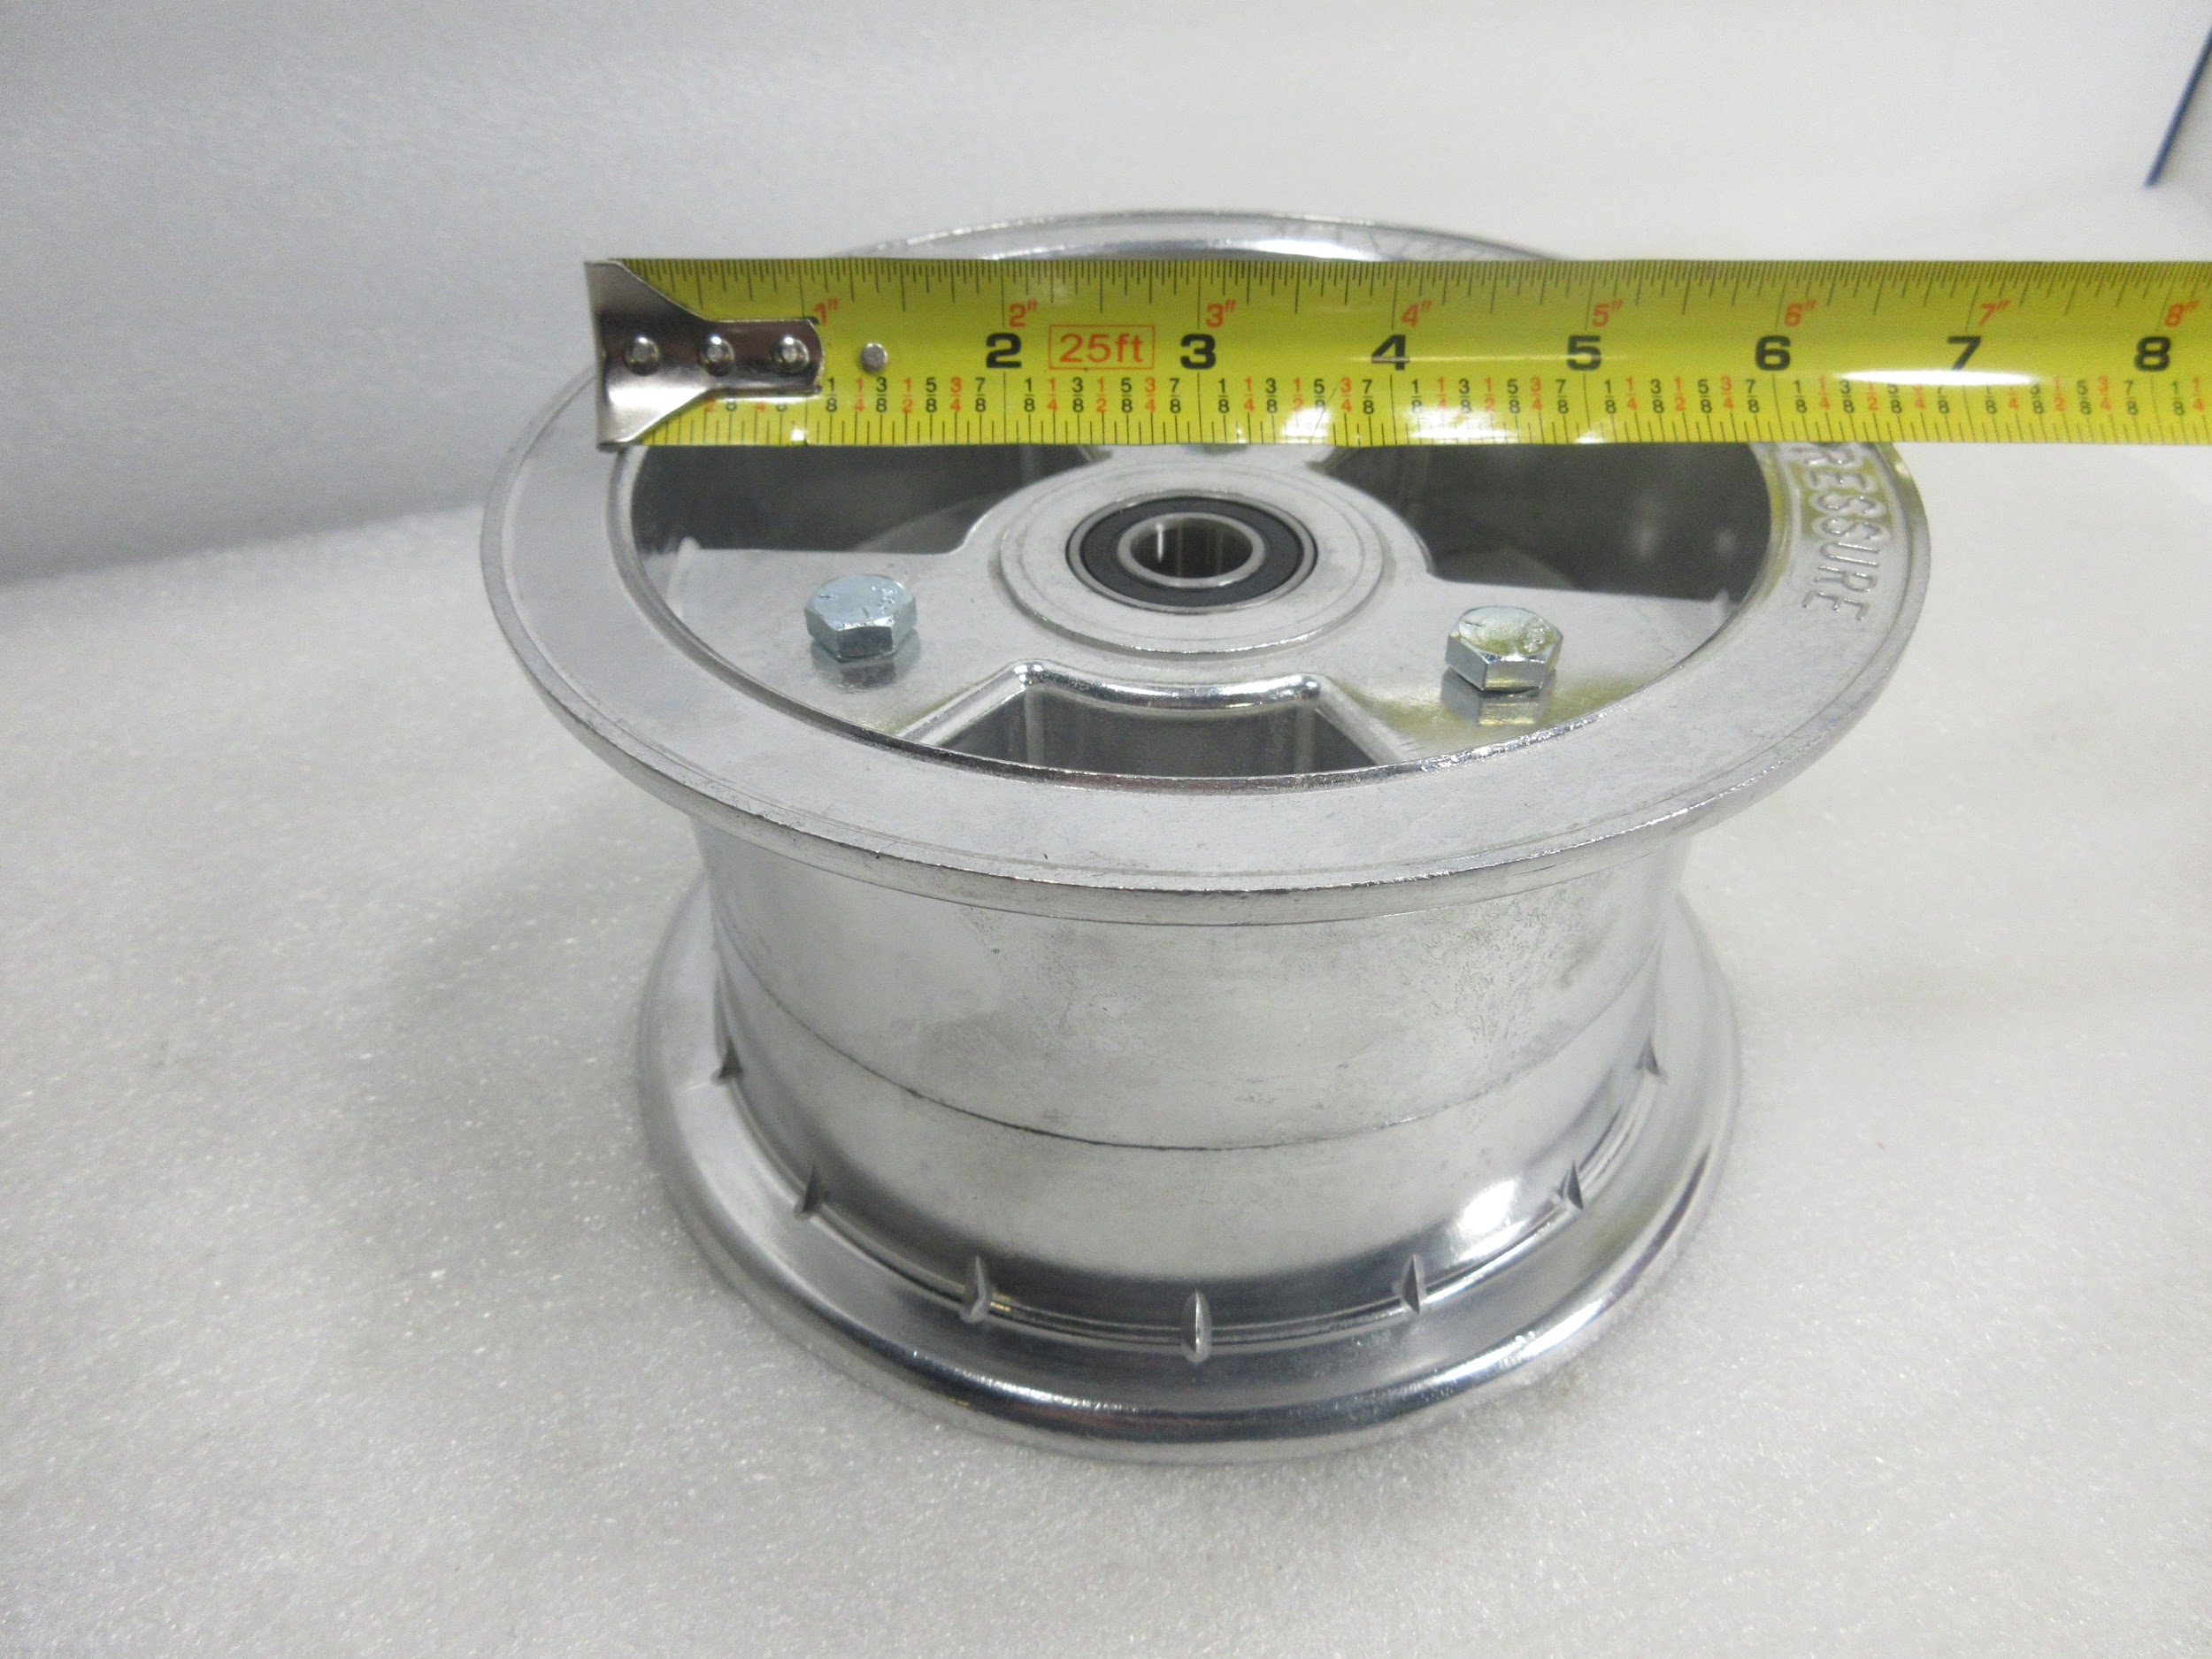 measure-wheel-diameter.jpg